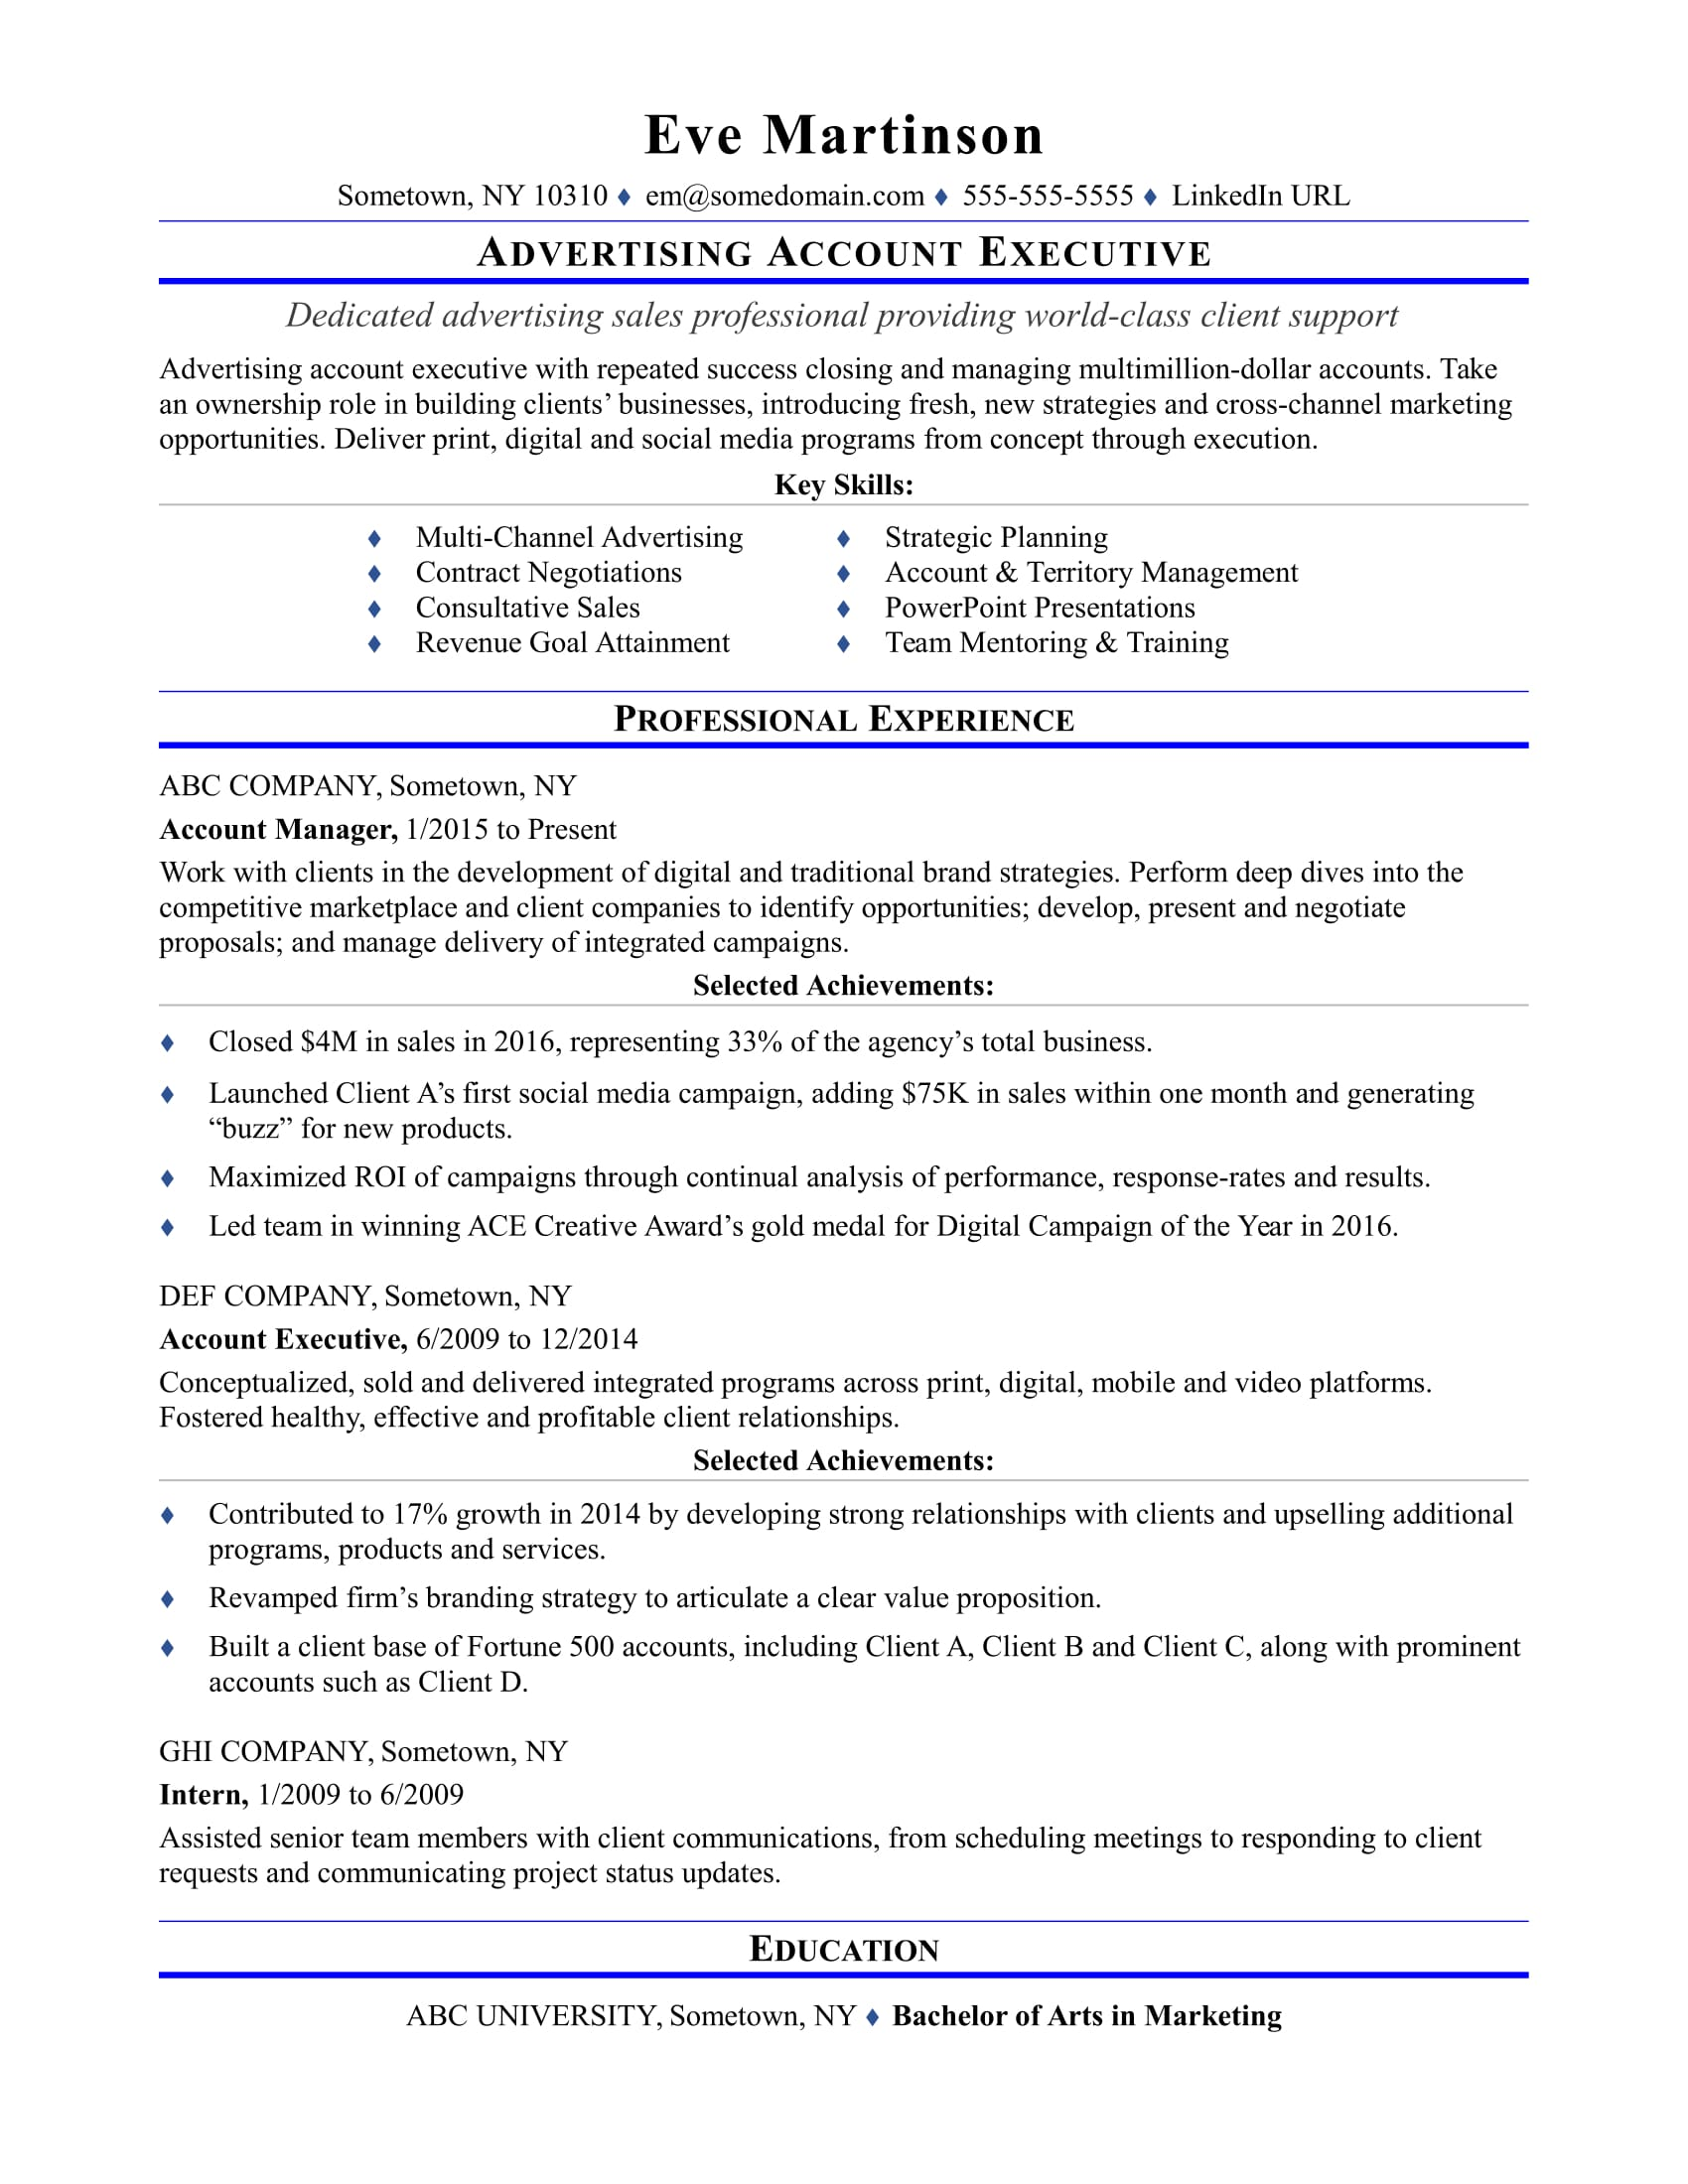 Sample Resume For An Advertising Account Executive  Sample Resume For Customer Service Rep